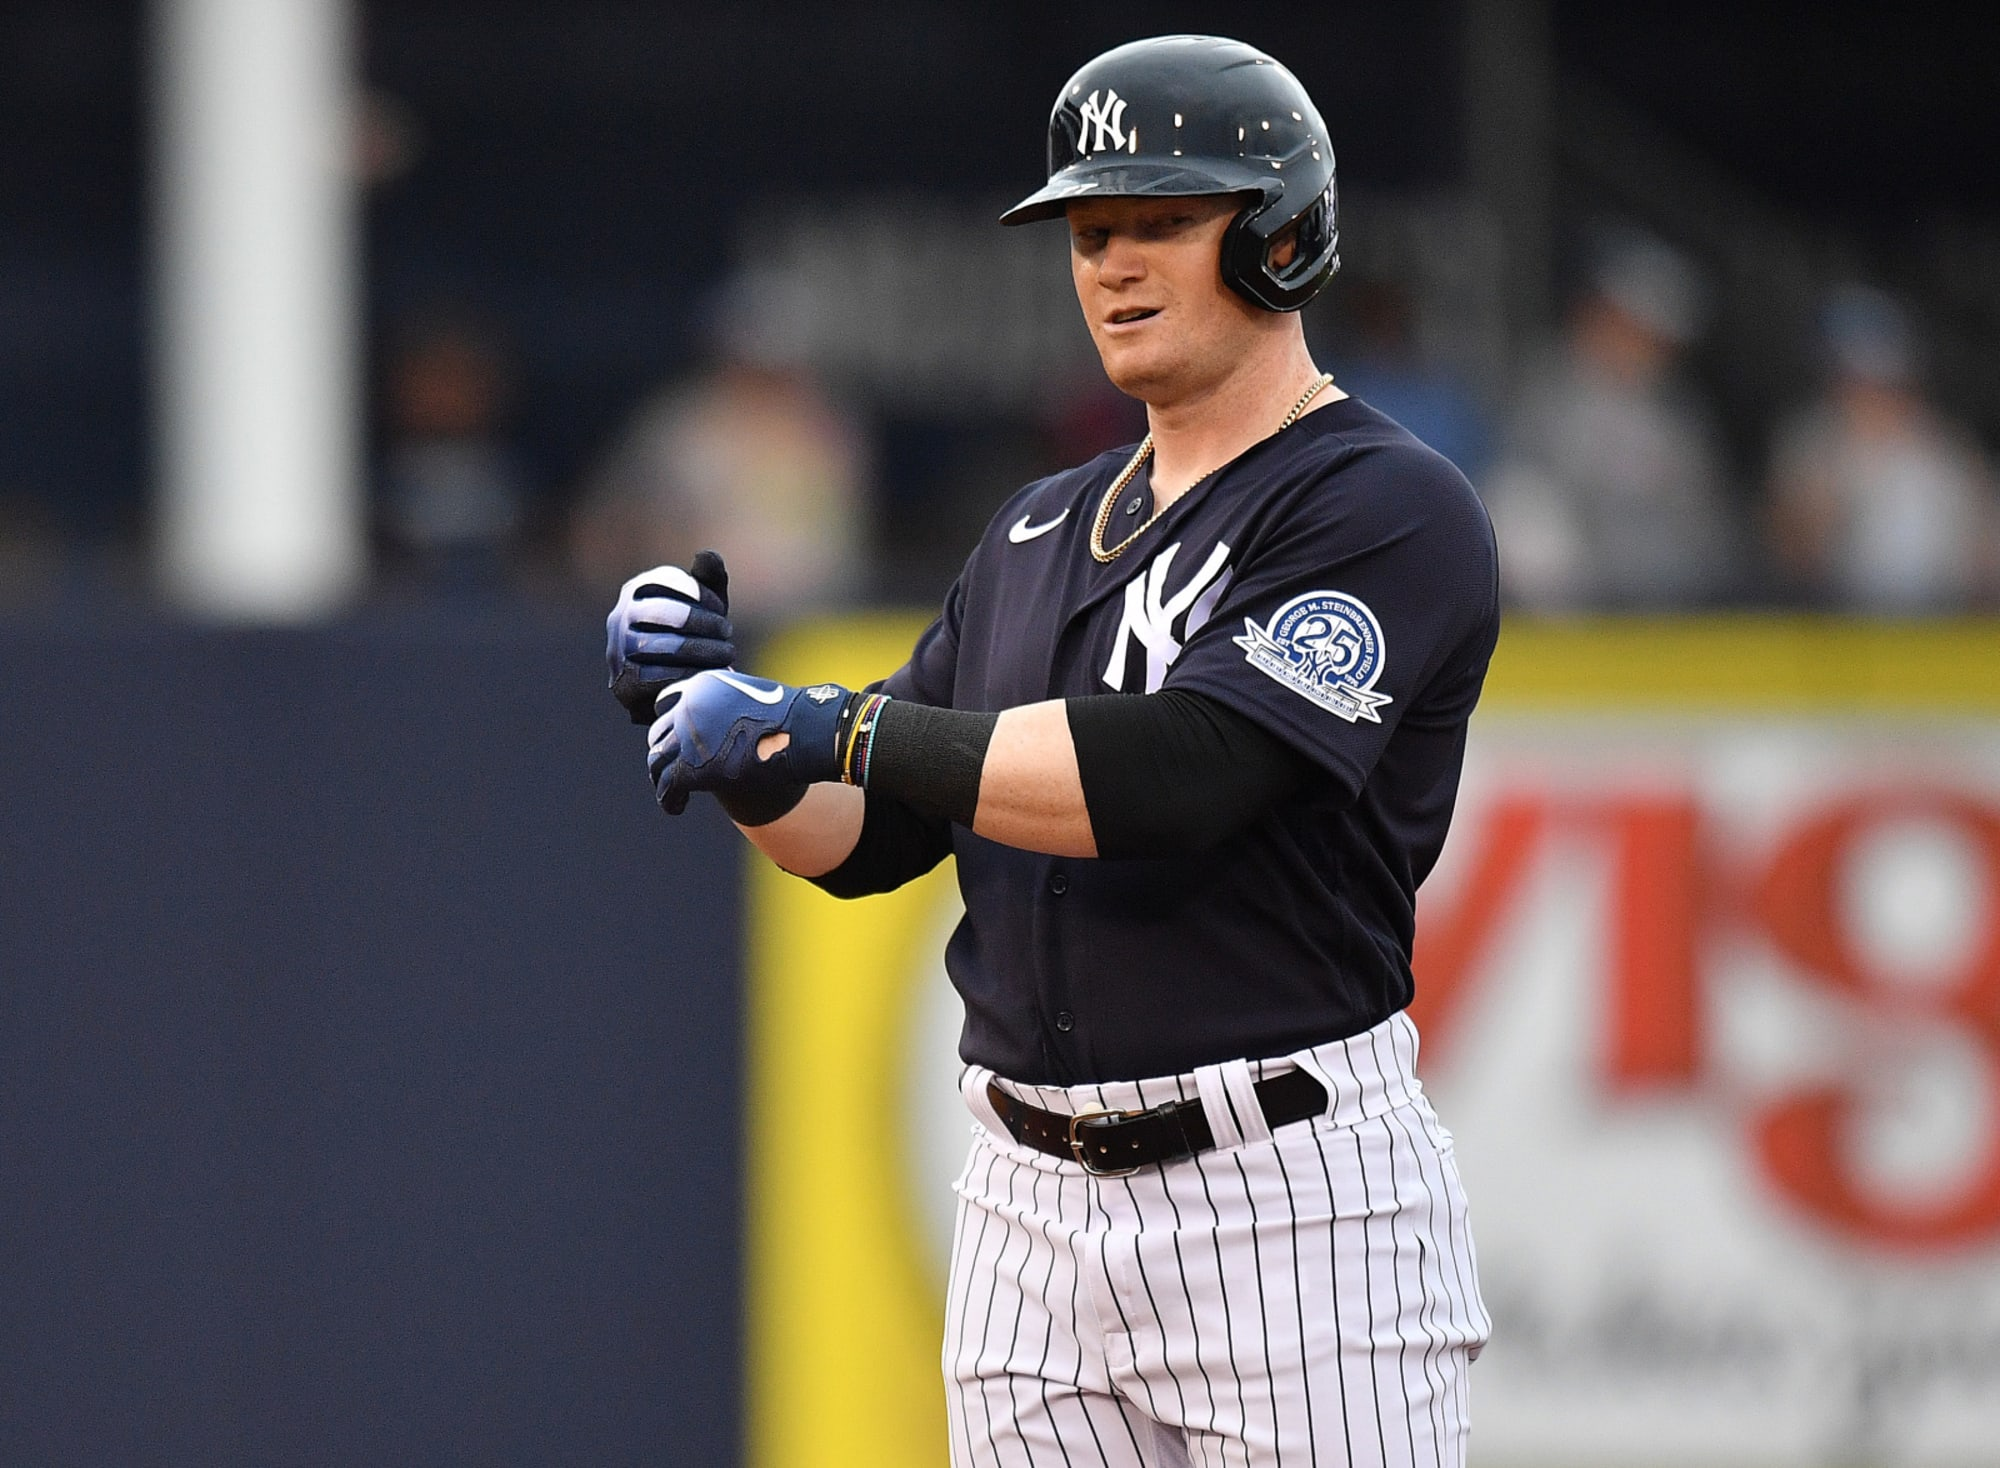 Yankees: Clint Frazier Explaining Why He Wears a Mask Should Teach Everyone a Lesson